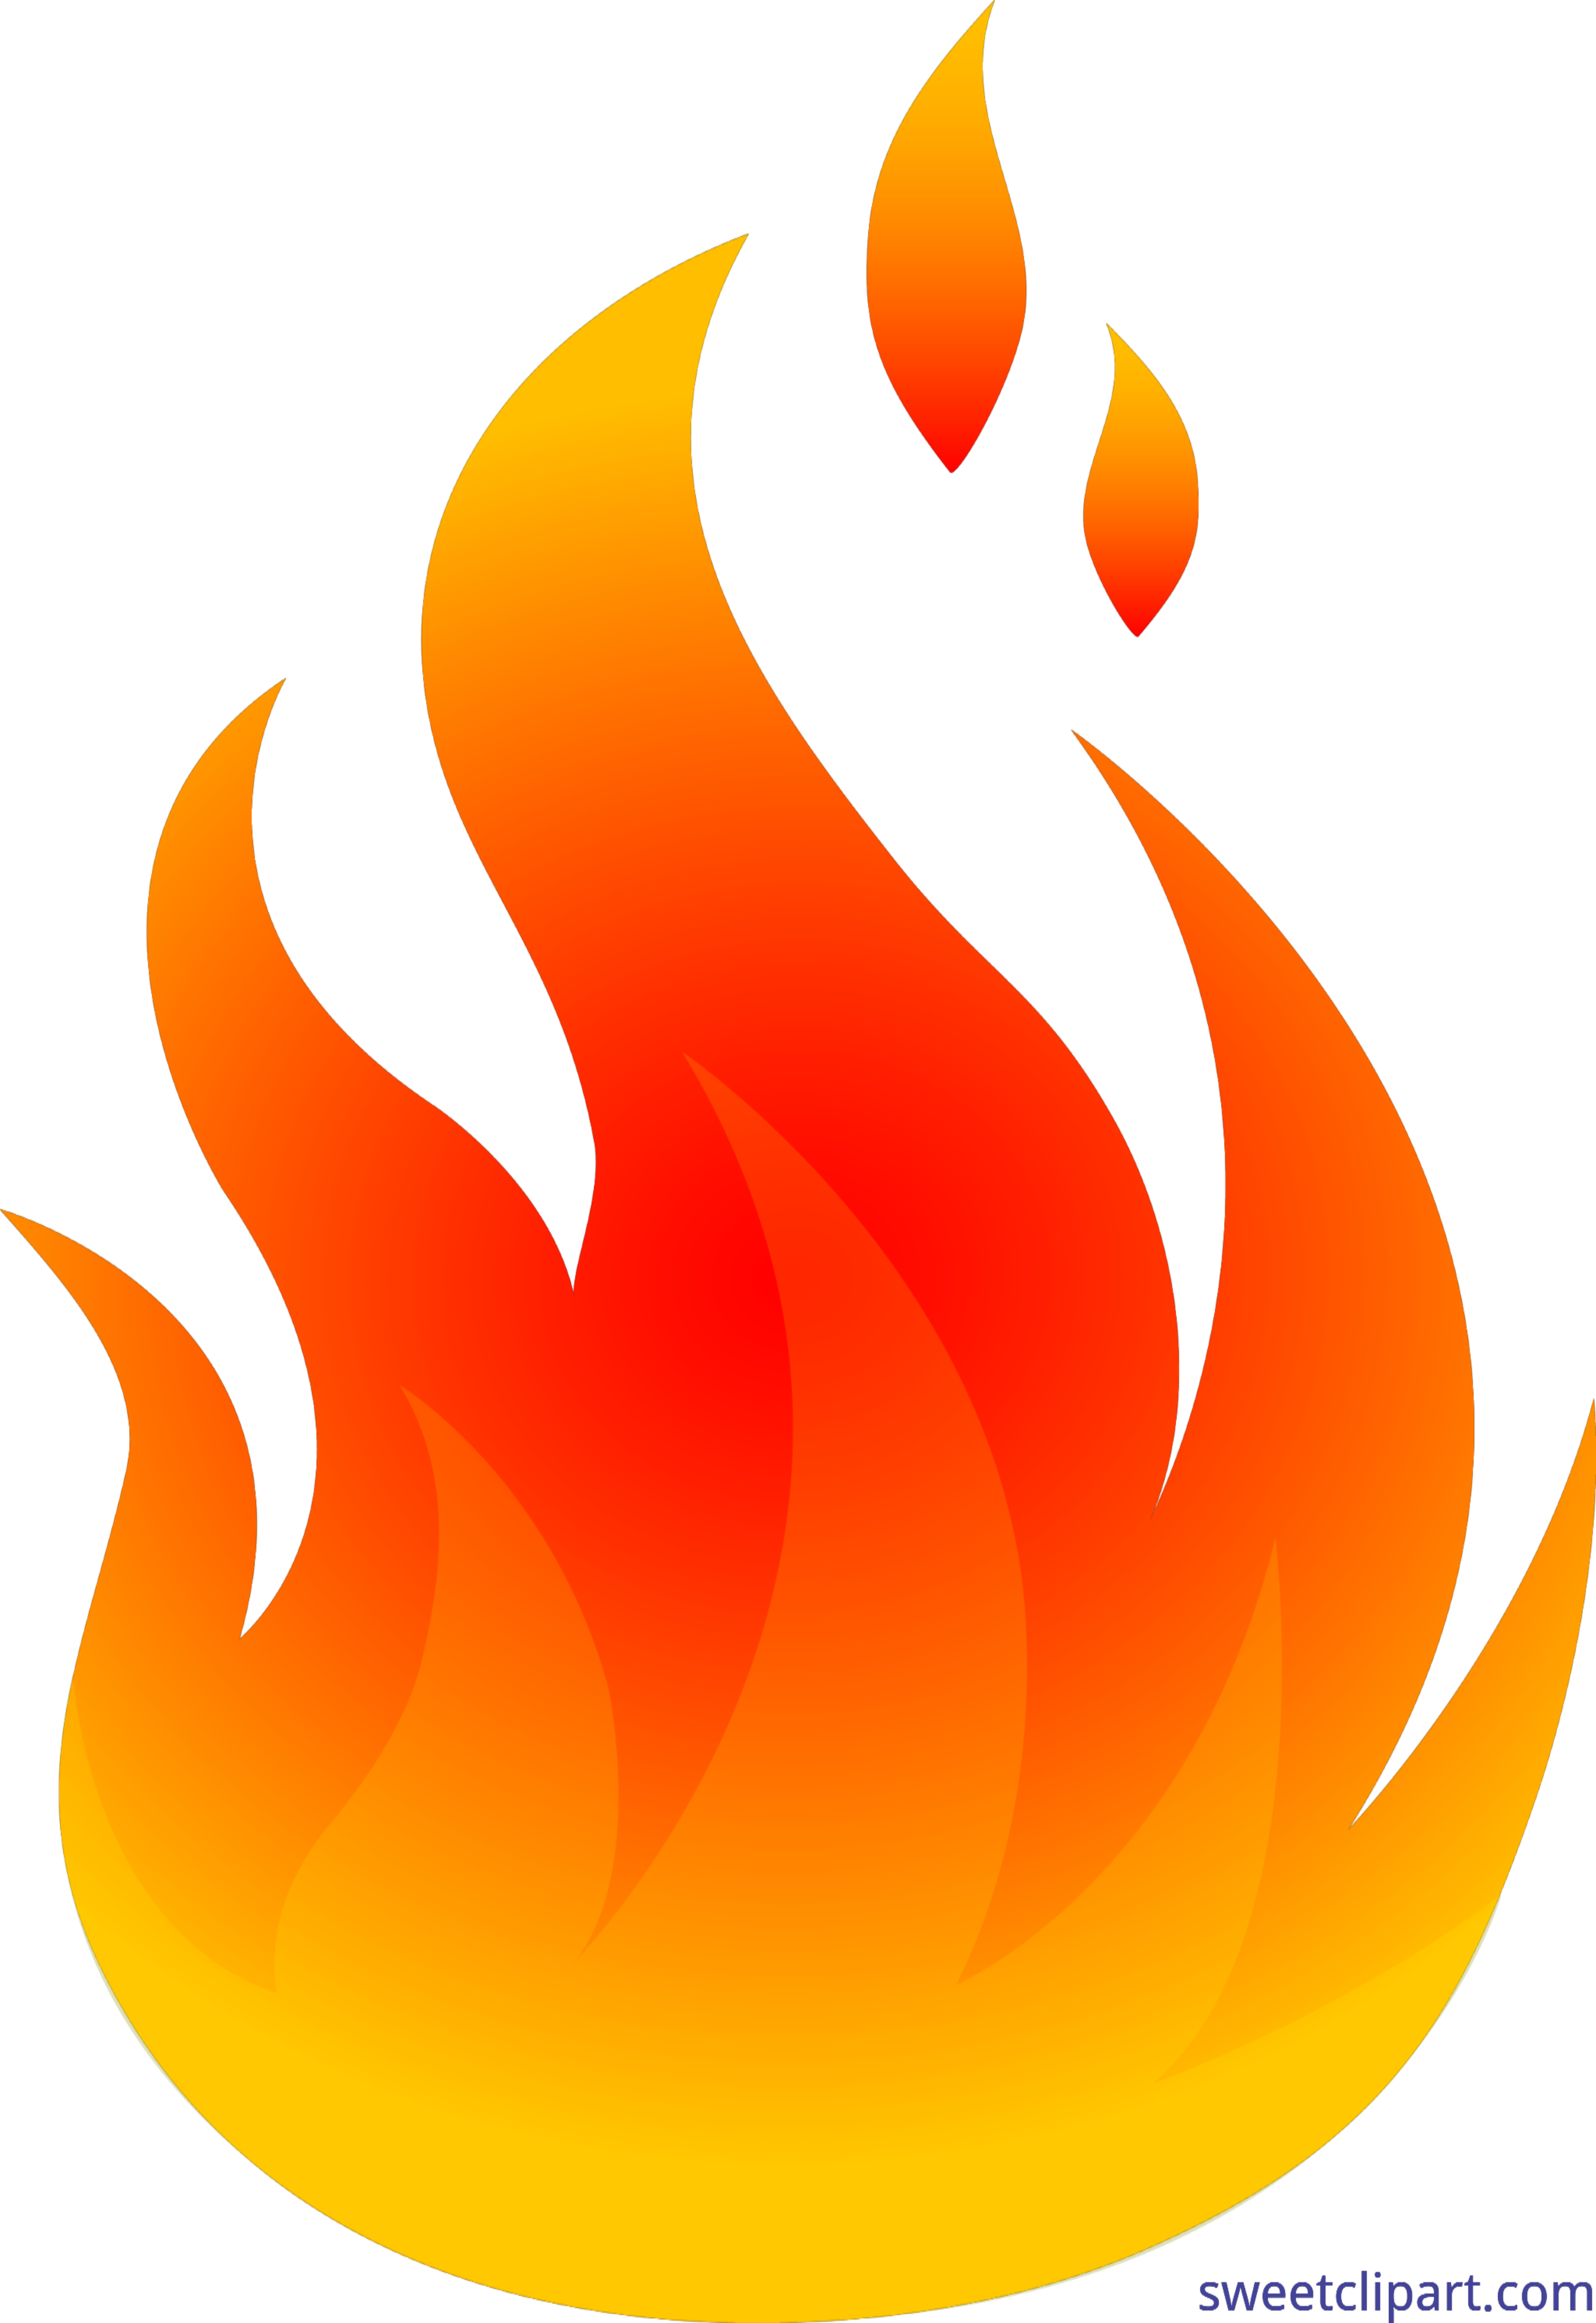 Flame logo png. Red and yellow fire